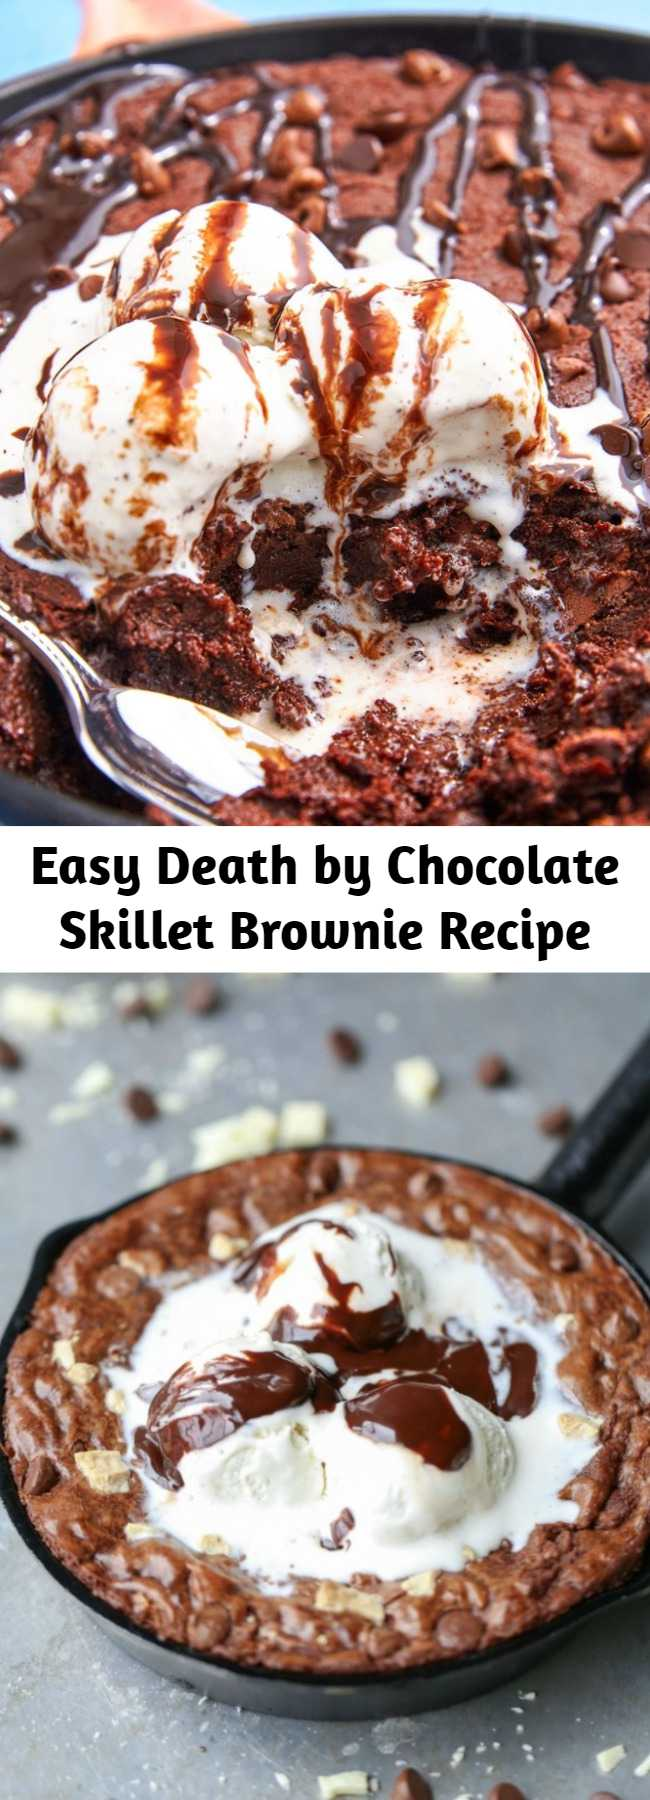 Easy Death by Chocolate Skillet Brownie Recipe - Upgrade your Valentine's Day with this luscious Triple-Chocolate Skillet Brownie recipe. This brownie uses only enough flour to hold it all together, keeping the center super-rich and fudgy.